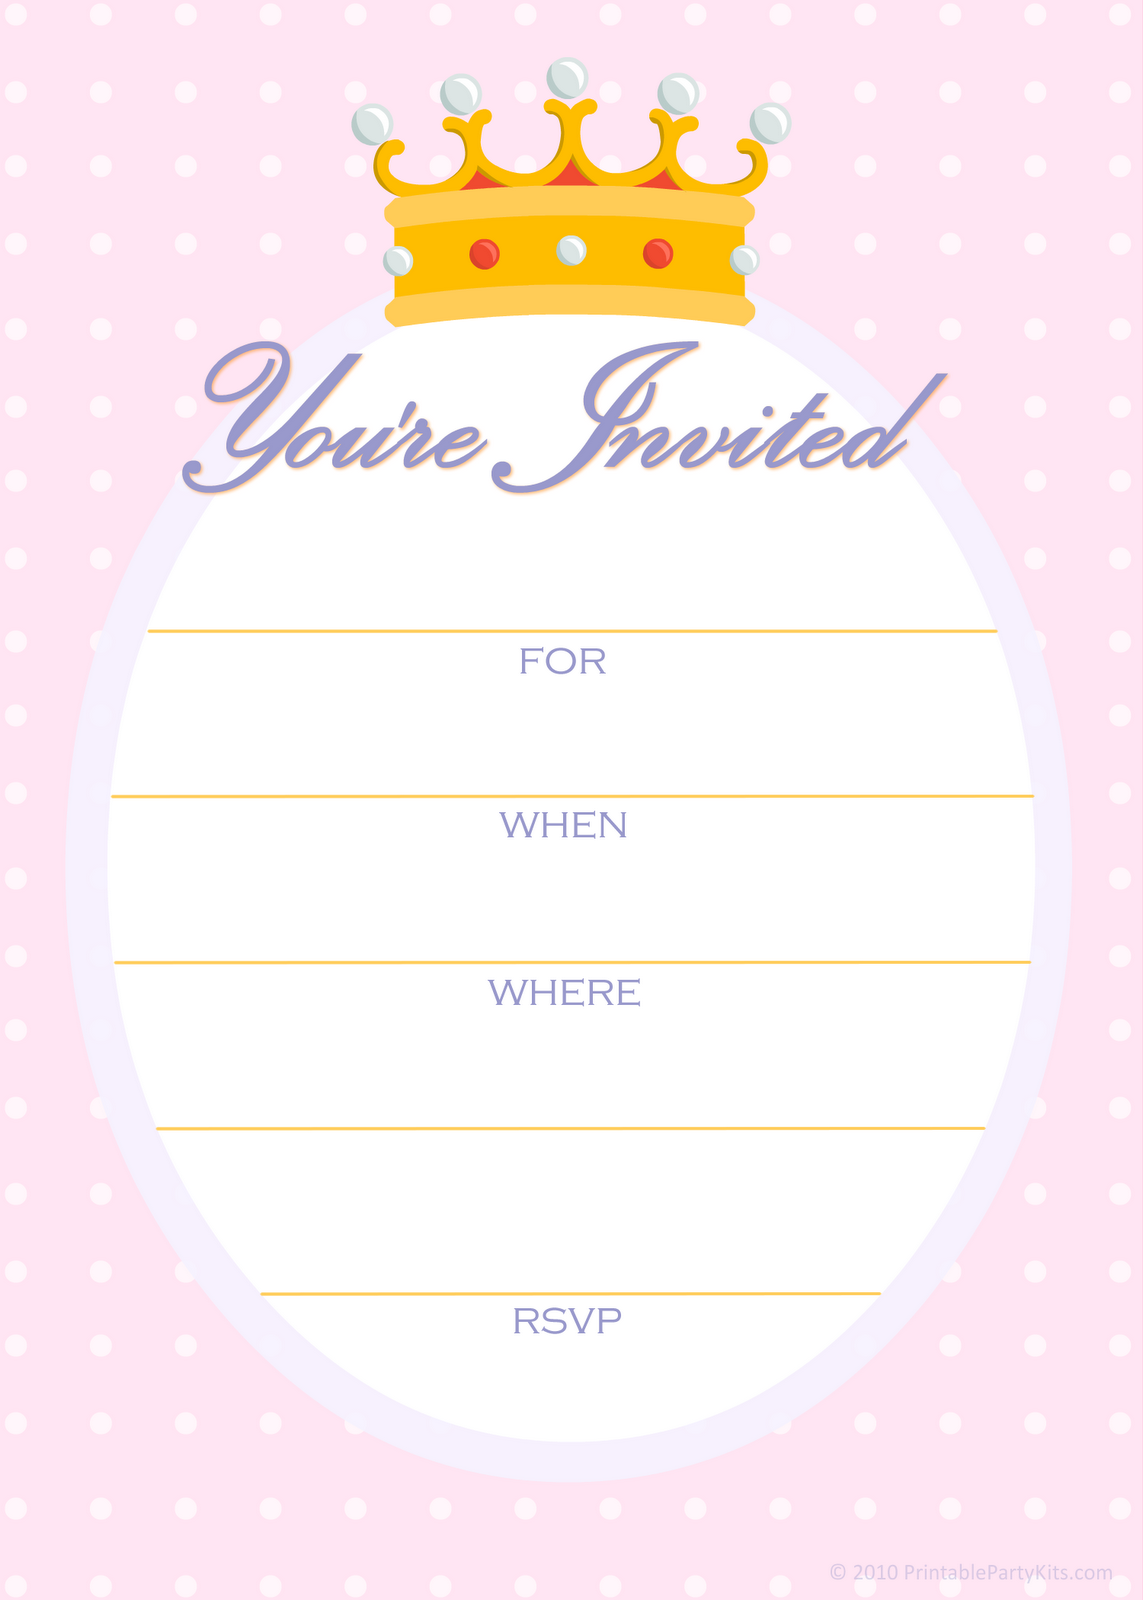 Free Printable Party Invitations: Free Invitations for a Princess ...